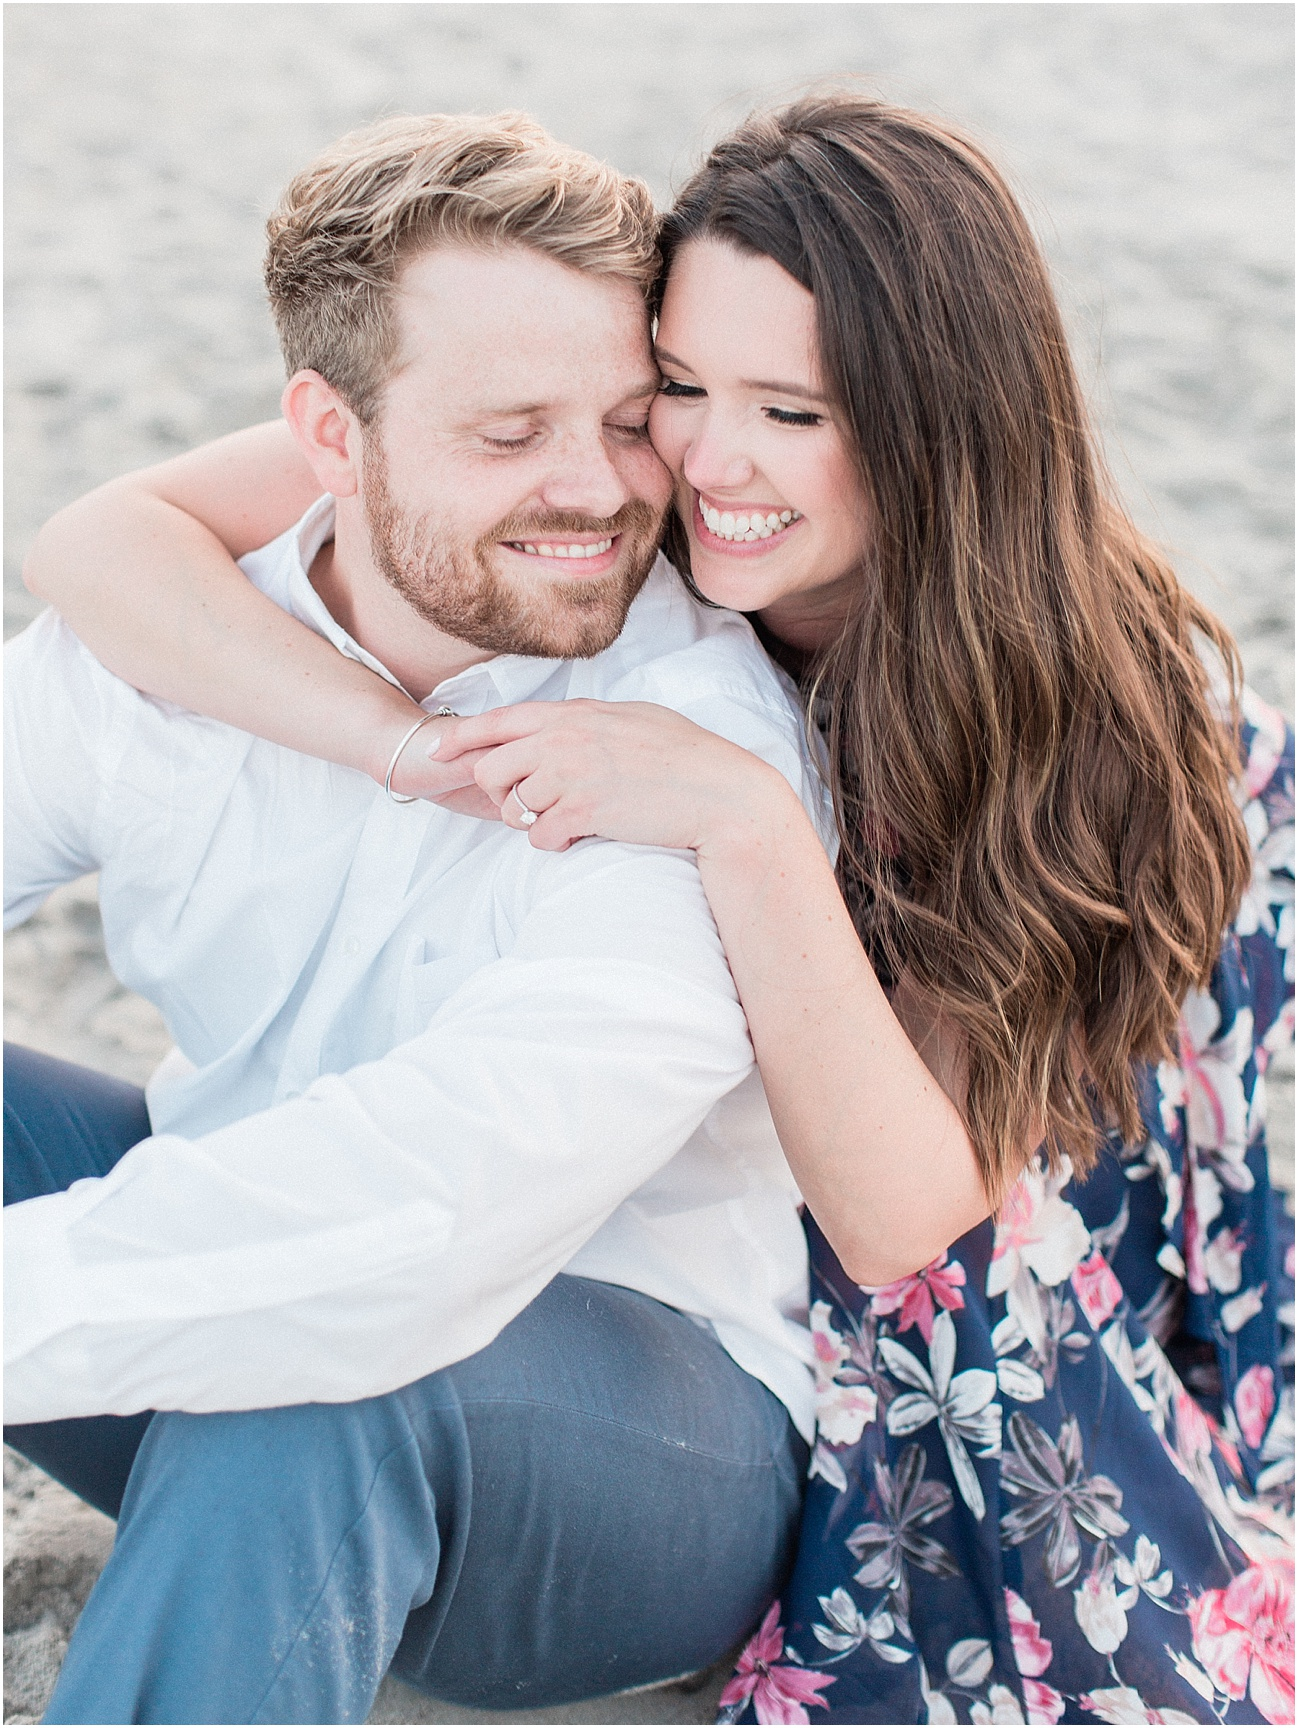 heather_chris_narragansett_beer_cliff_walk_beach_rhode_island_ri_cape_cod_boston_wedding_photographer_meredith_jane_photography_photo_0754.jpg